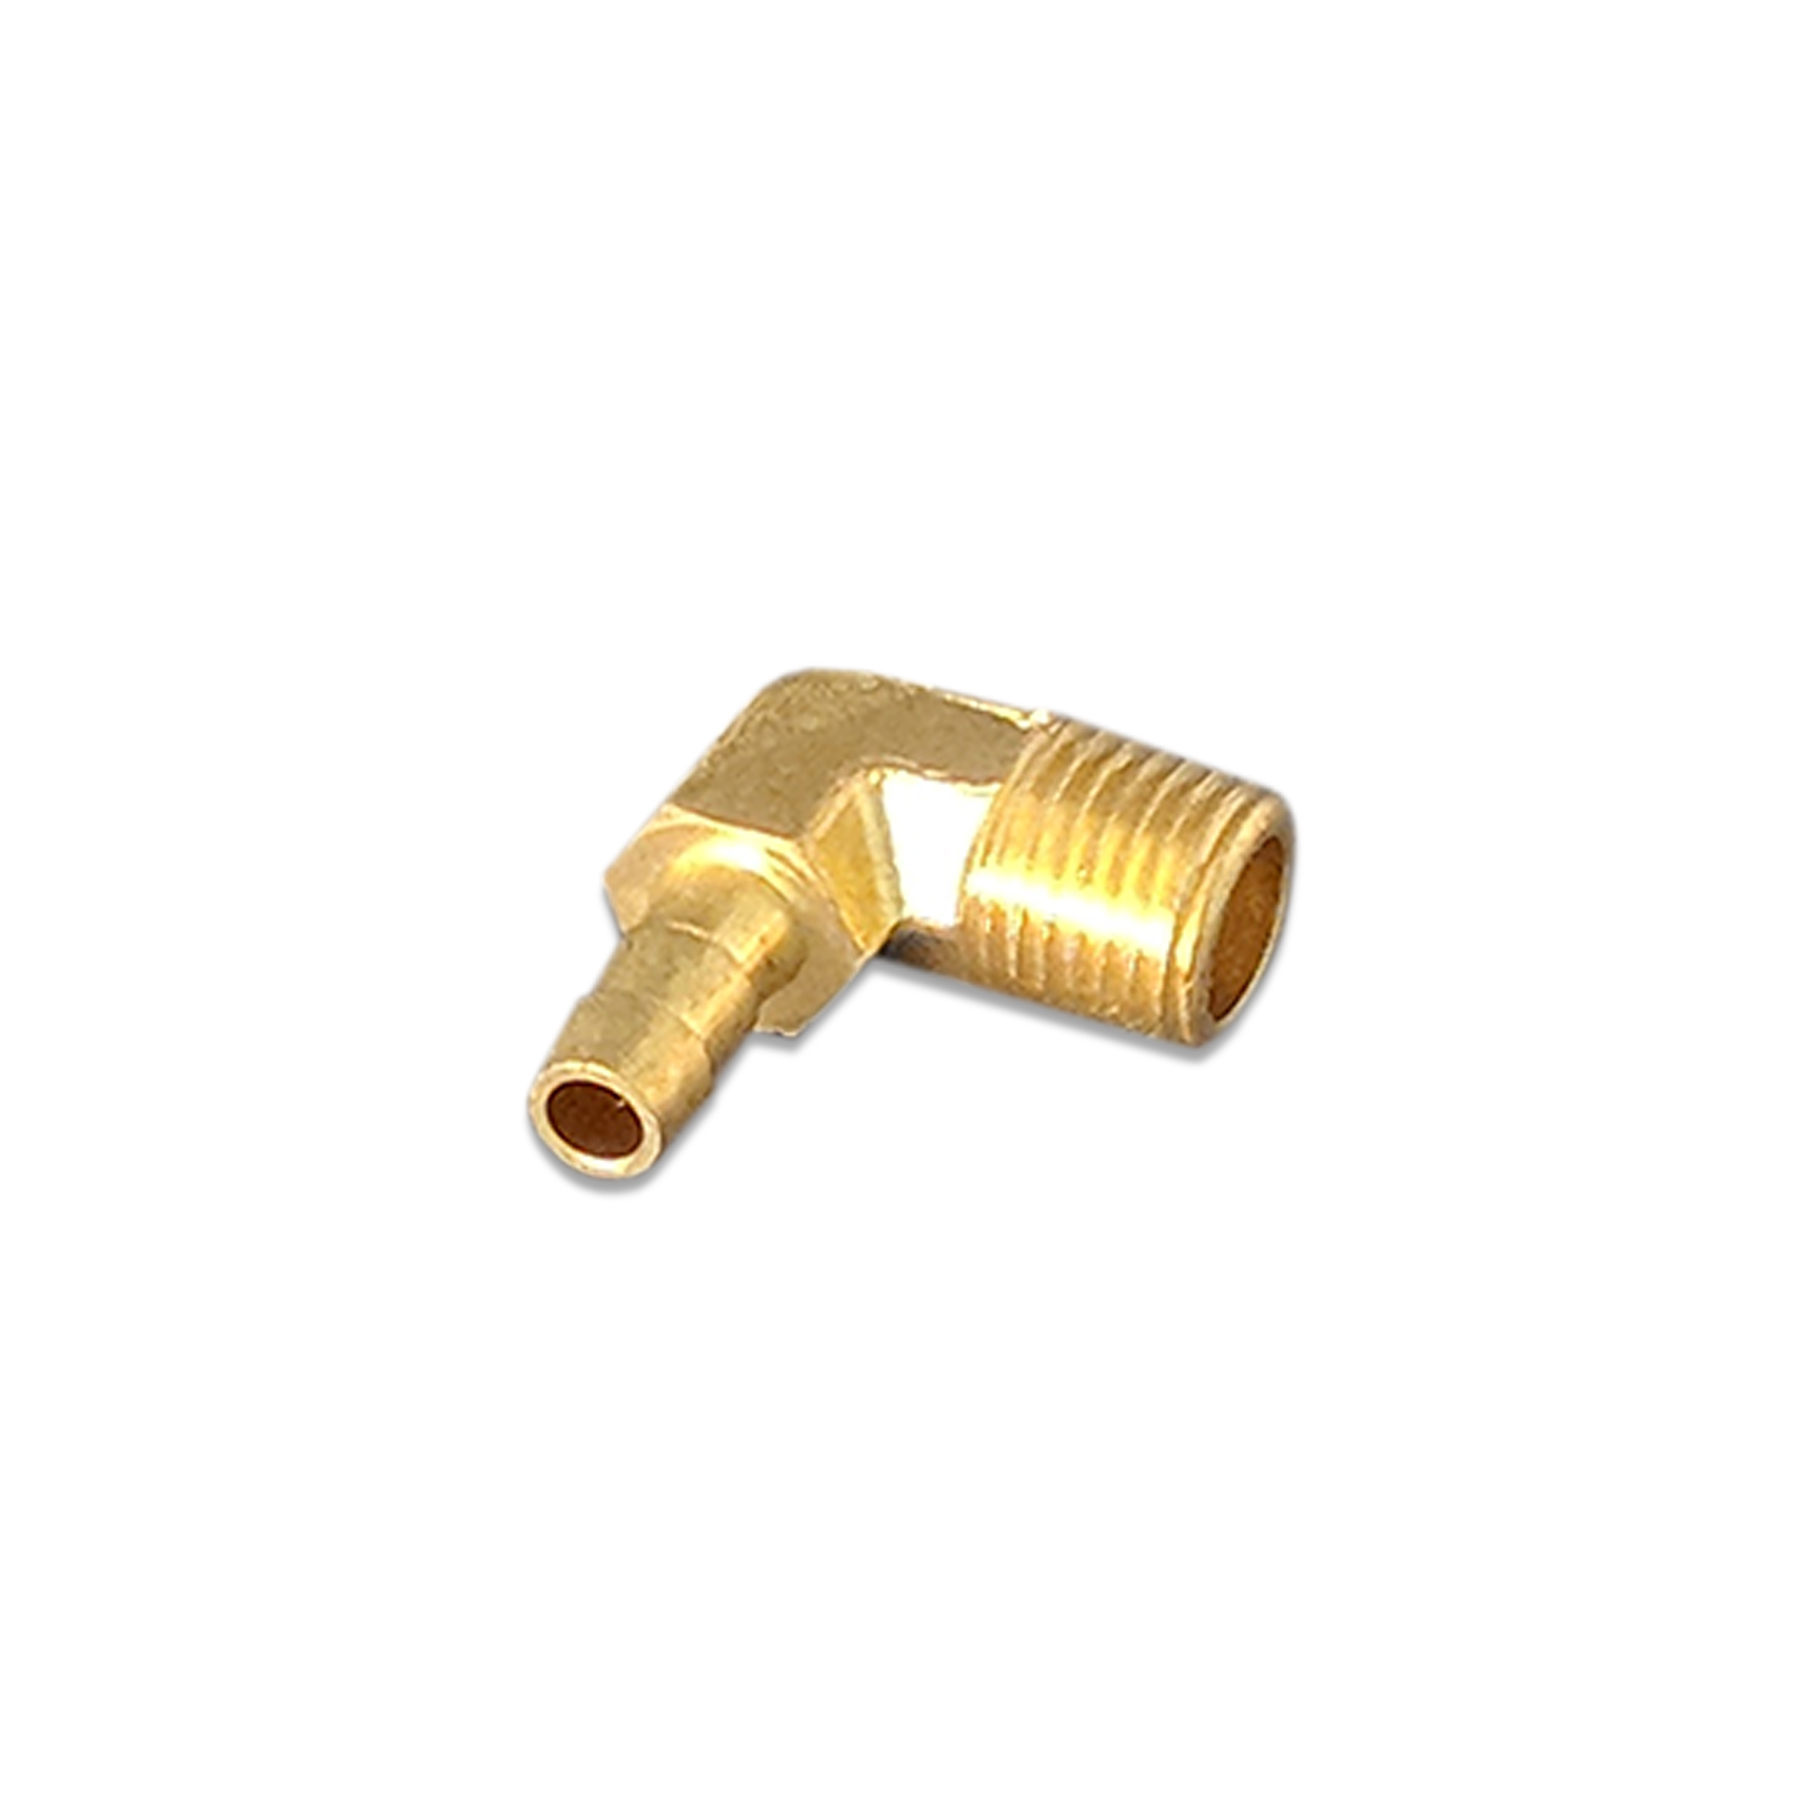 90 Degree Brass Elbow Barb Fitting, 1/4 x 1/4, (M) NP